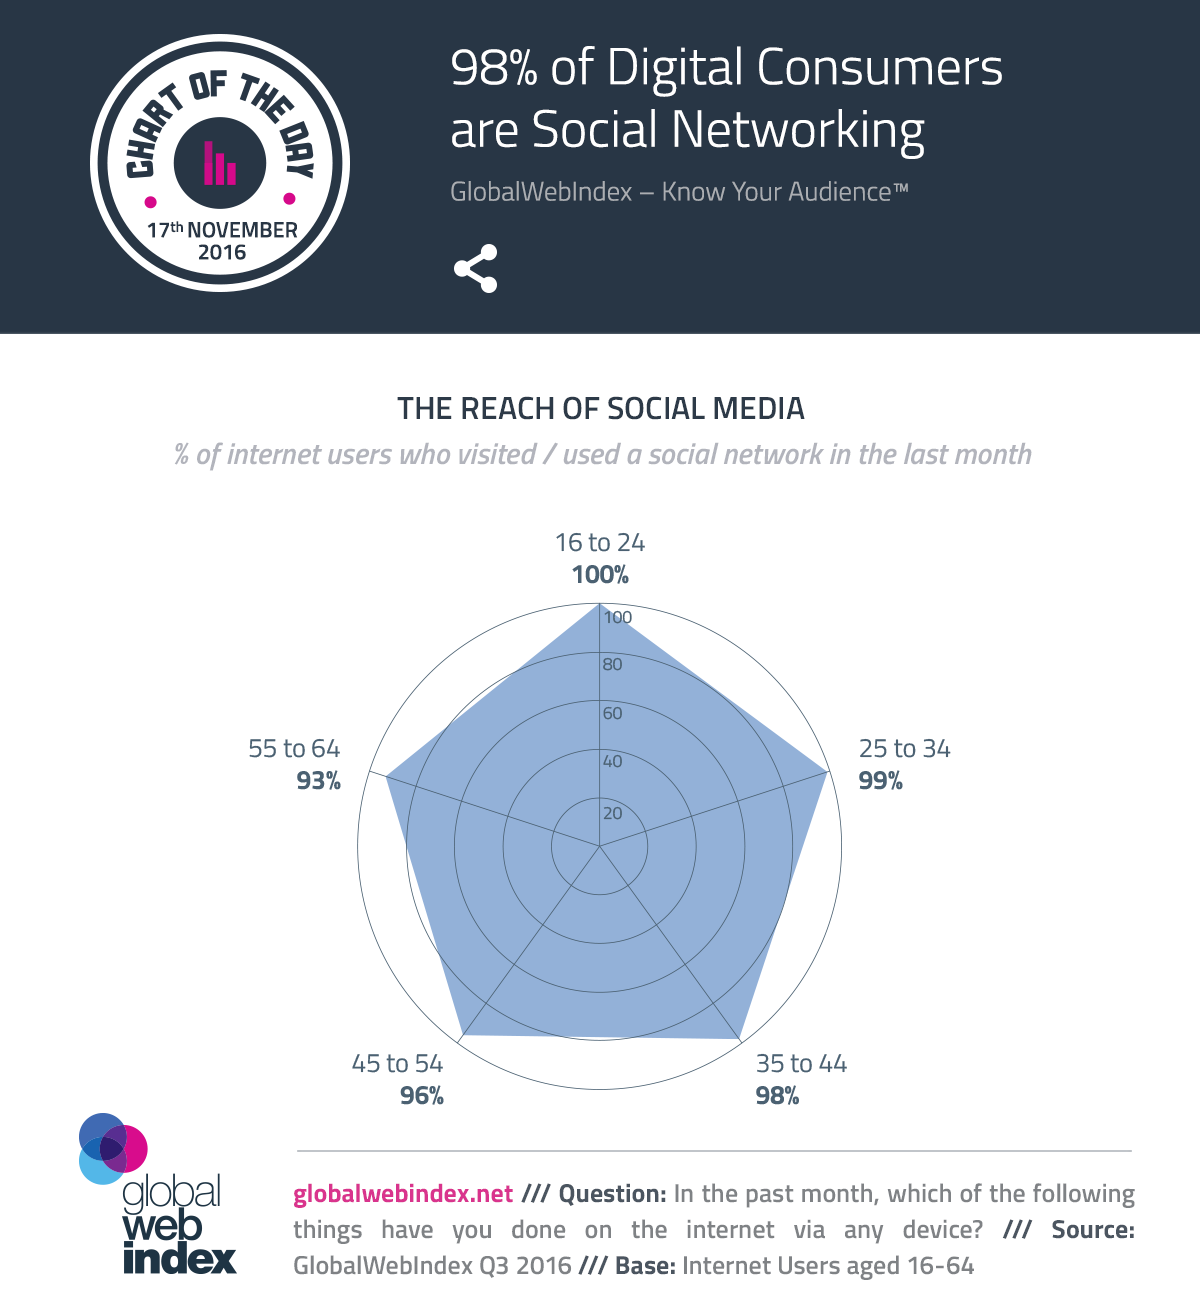 98% of Digital Consumers are Social Networking